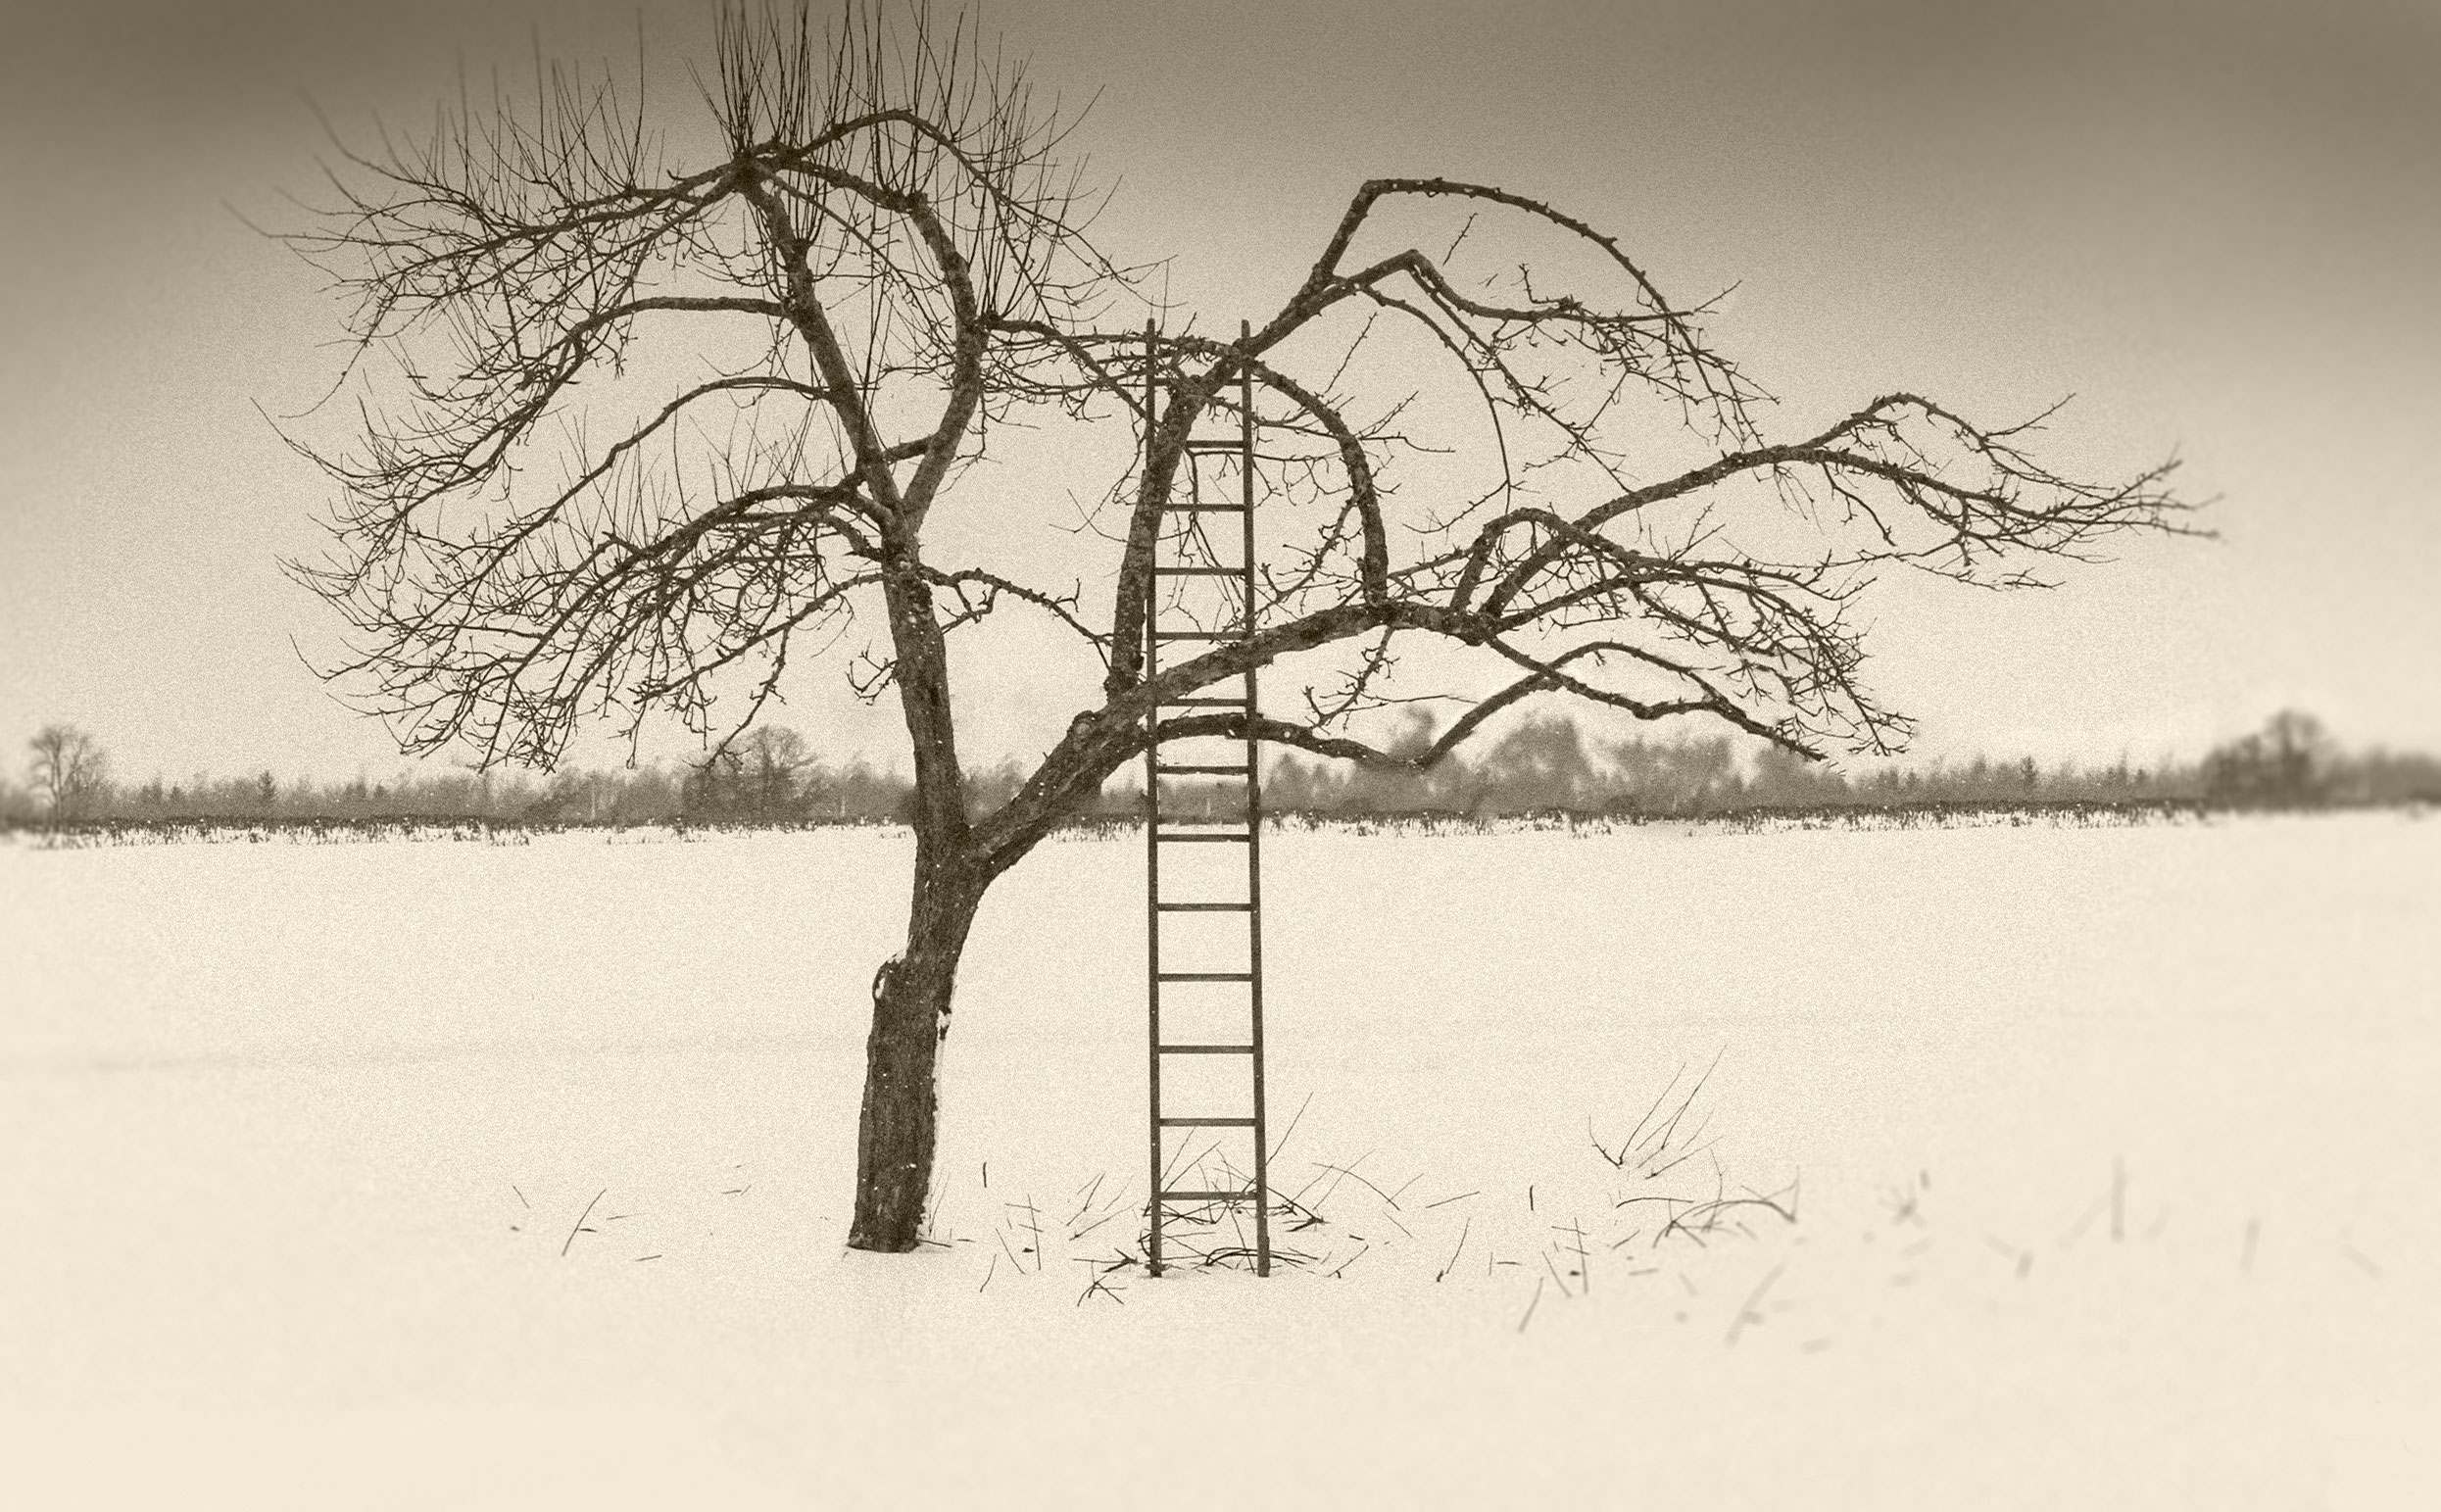 Tree and Ladder